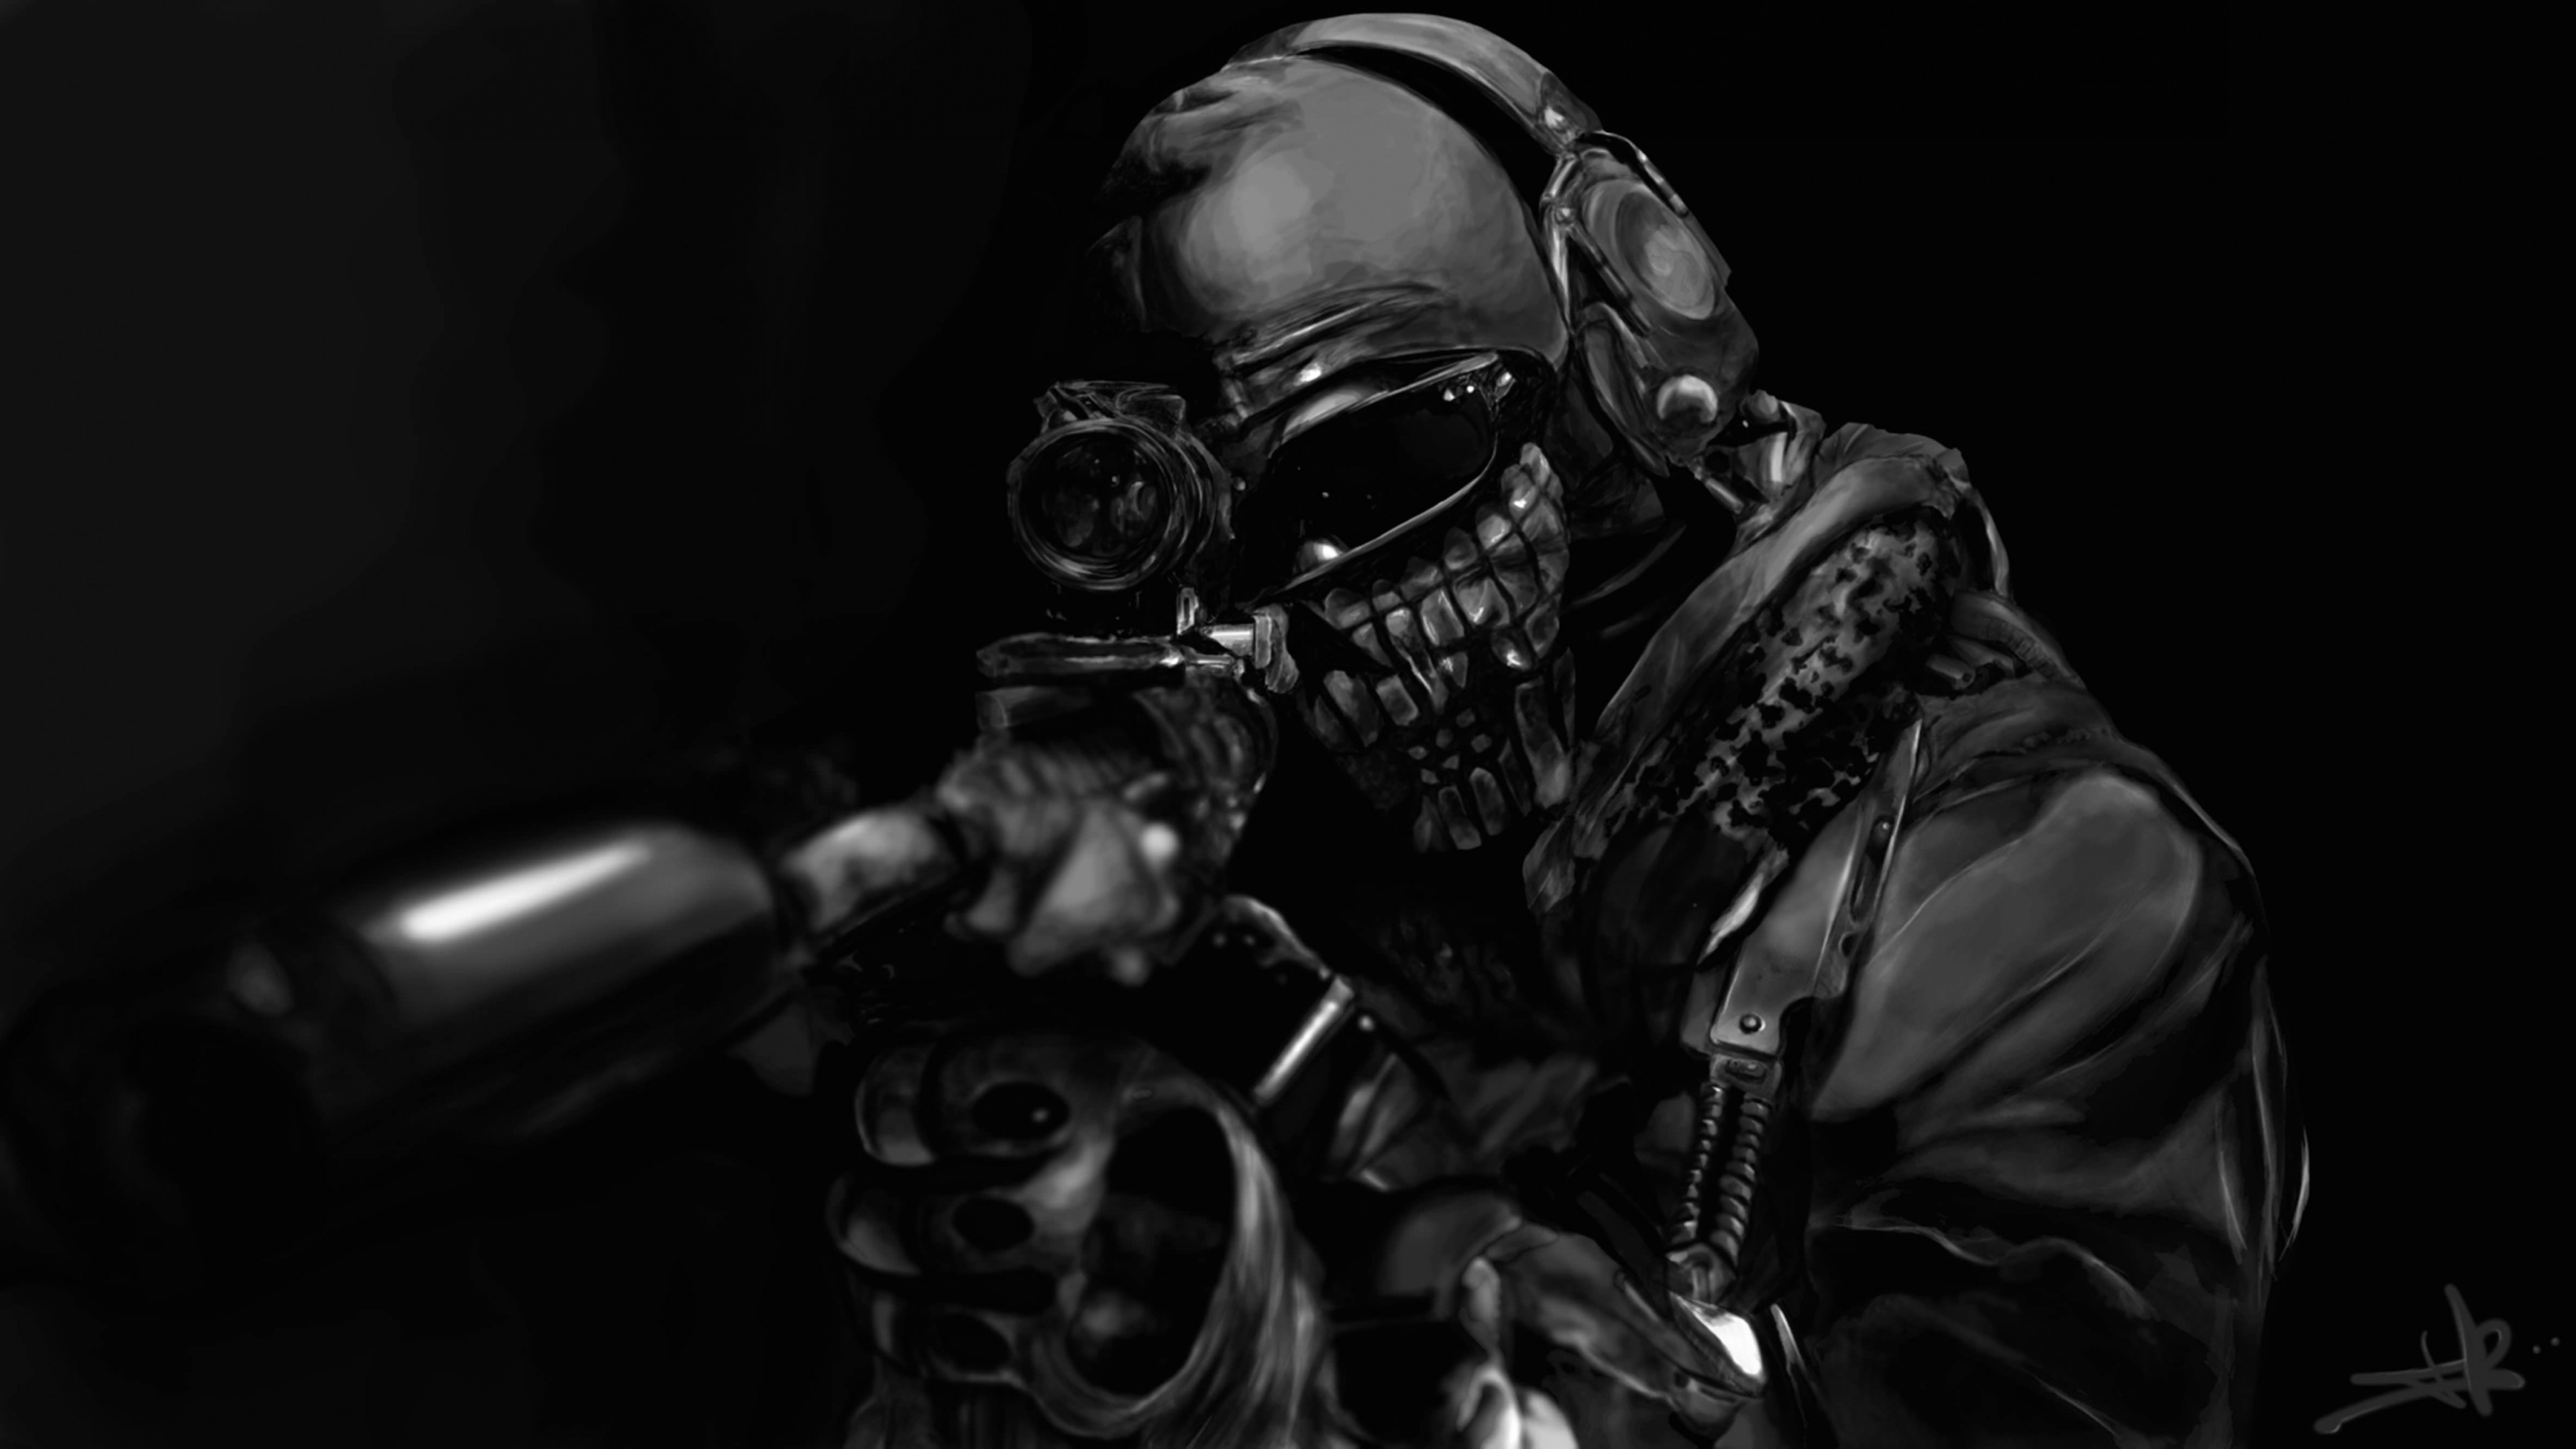 Call of Duty Ghost Masked Warrior Wallpaper for Desktop 4K 3840x2160